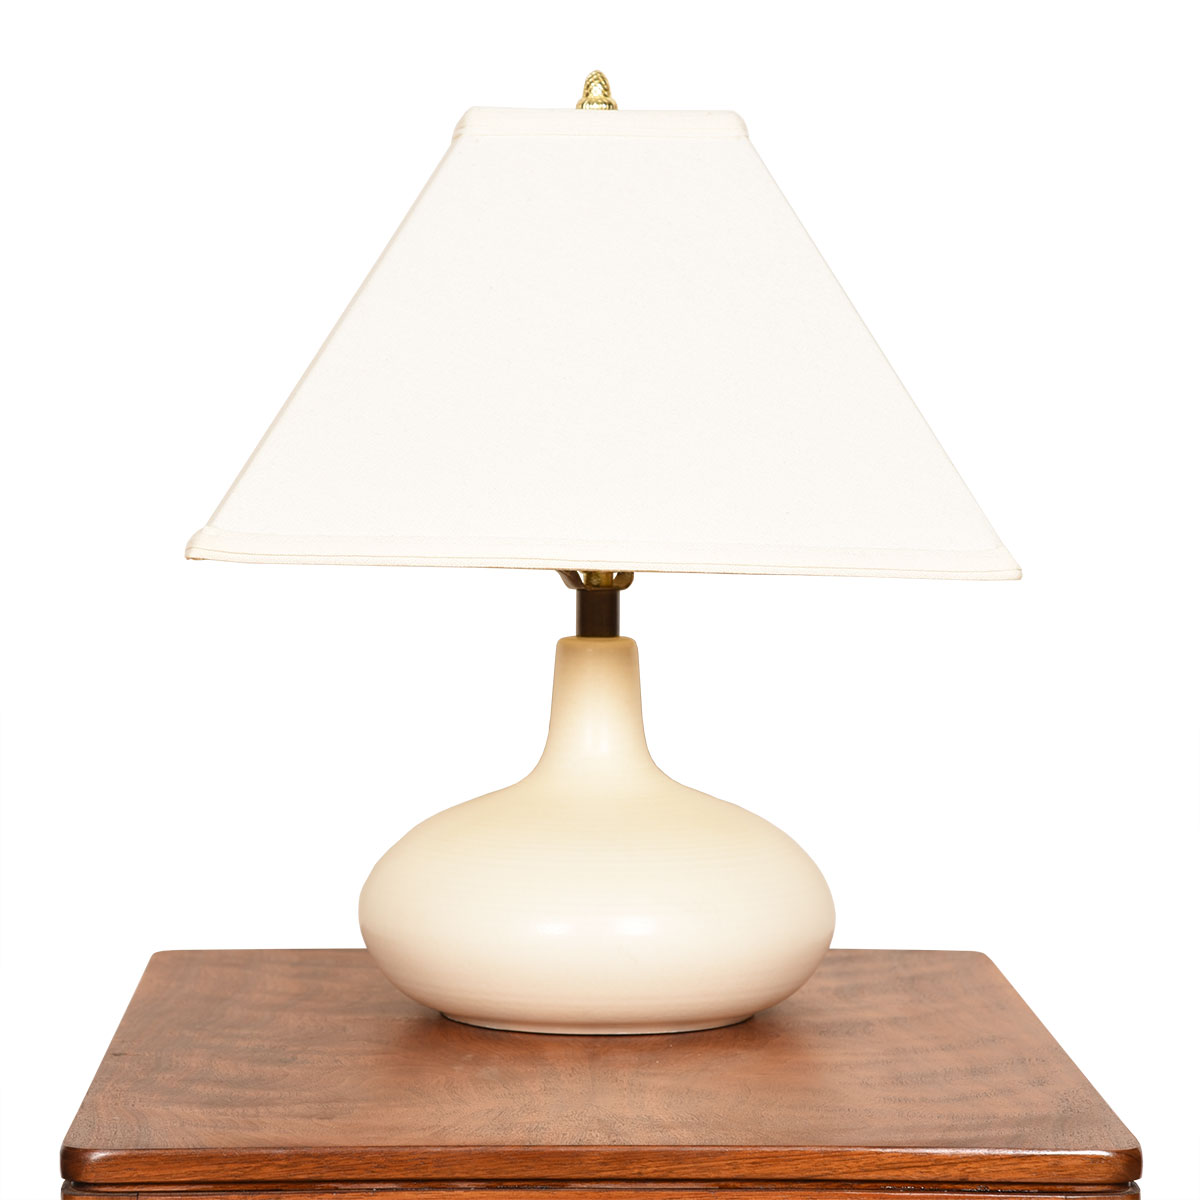 Small Round Bostlund Lamp